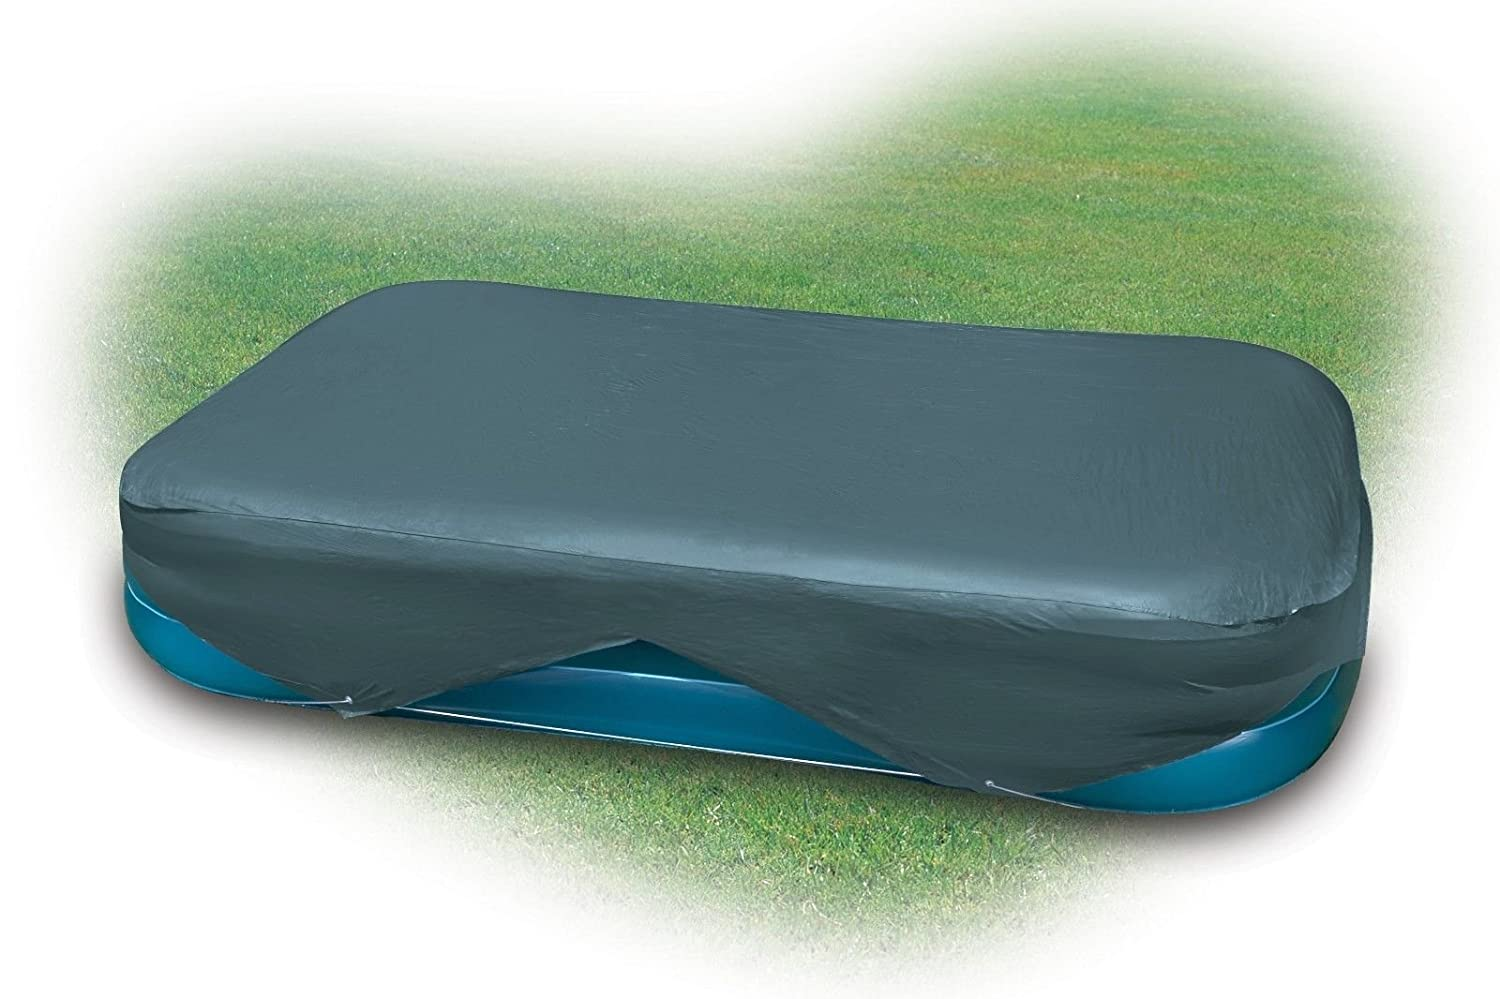 B000QF1F7Q Intex Rectangular Pool Cover for 103 in. x 69 in. or 120 in. x 72 in. Pools 71KdVM25UVL